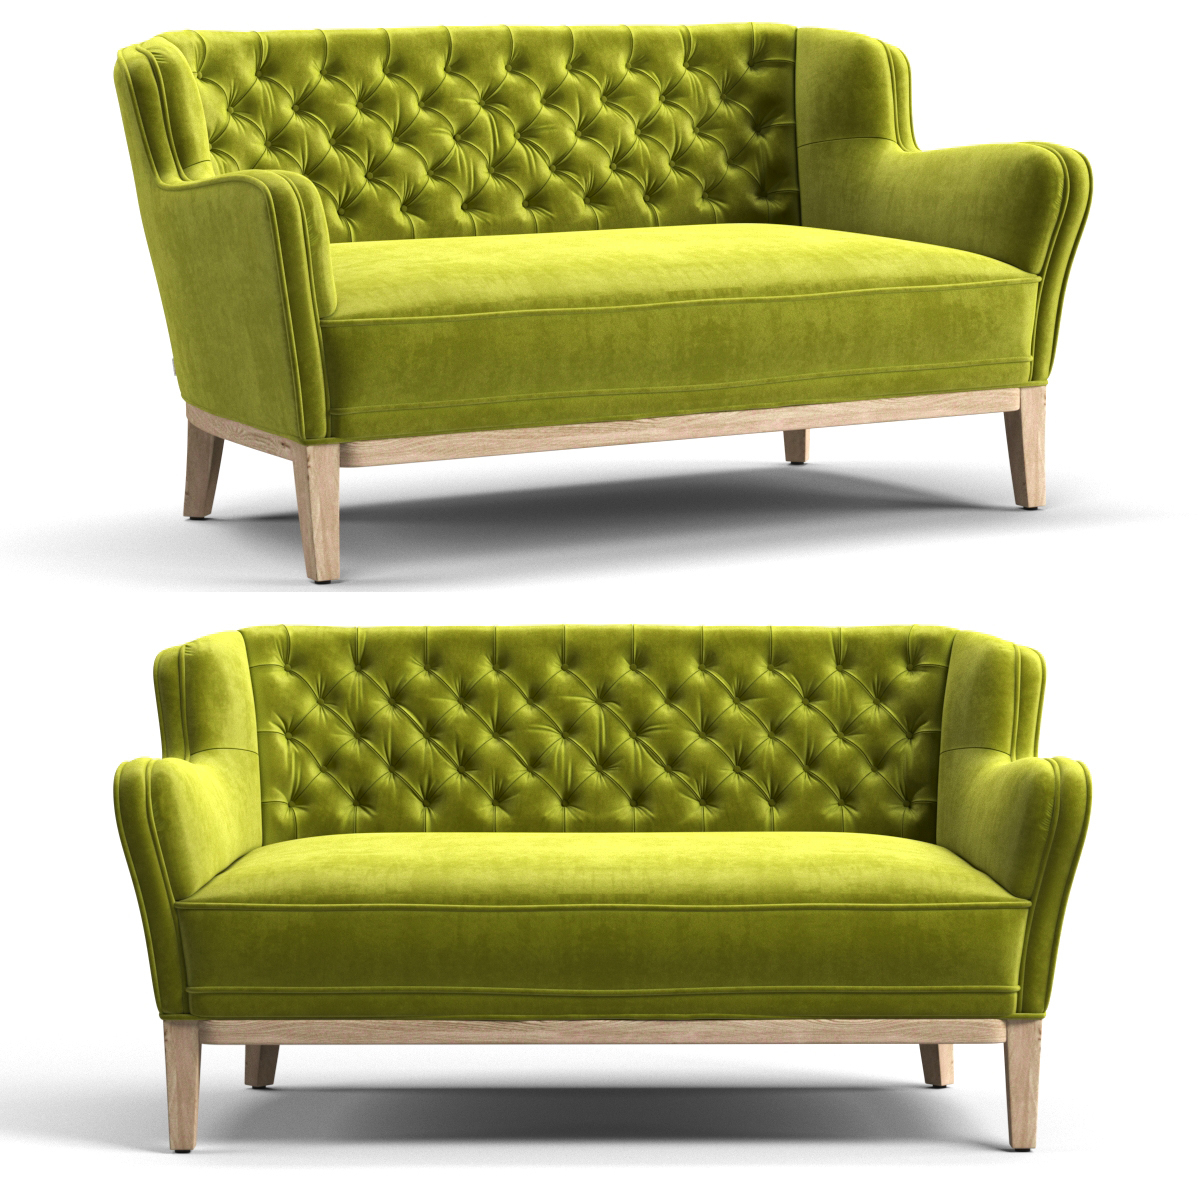 Full Size of Kare Sofa Leder Infinity Design Couch Gianni Bed Furniture List Sale Samt Sales Coffee Shop 2 Sitzer 3d Modell Turbosquid 1366445 Tom Tailor Mit Abnehmbaren Sofa Kare Sofa